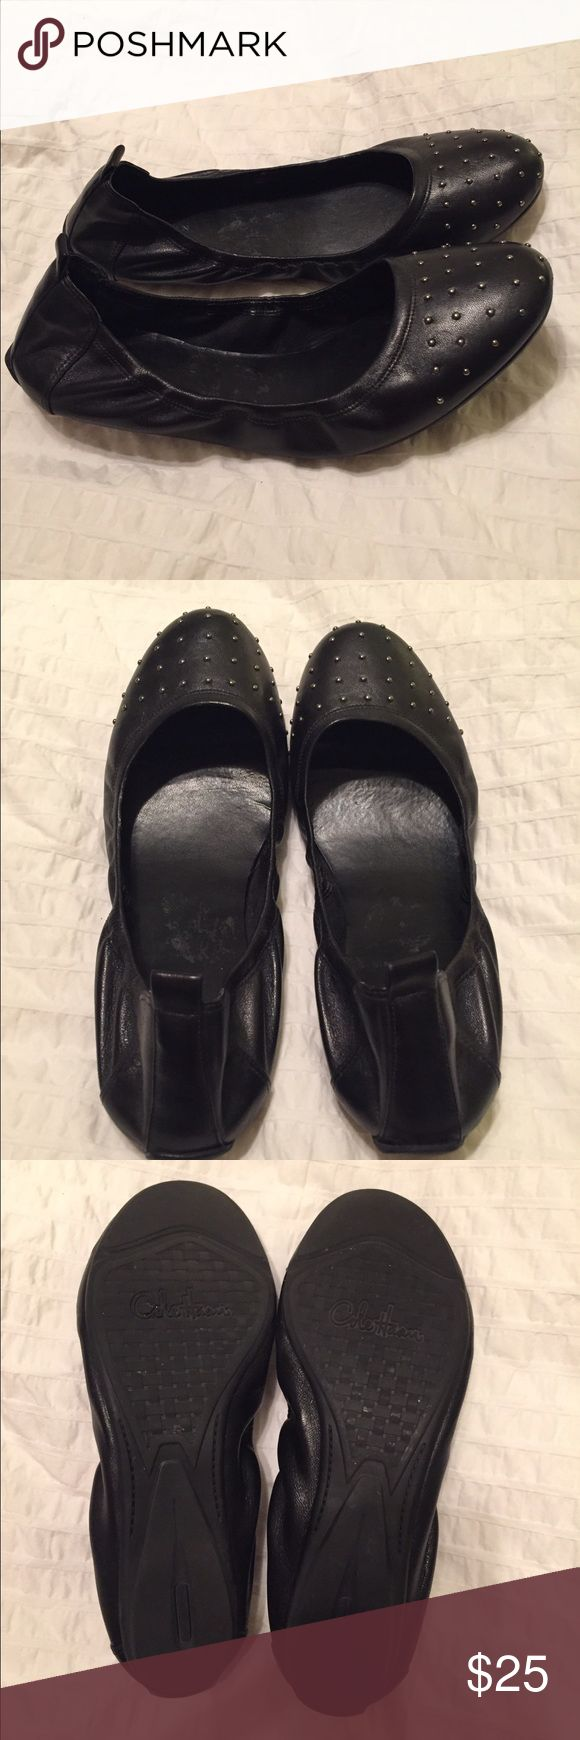 Cole Haan Ballet Flats Cole Haan studded ballet flats. Only worn a few times. Some wear on the inside of both shoes (shown in photos), mostly from the store's tags. Soles in great condition! Cole Haan Shoes Flats & Loafers